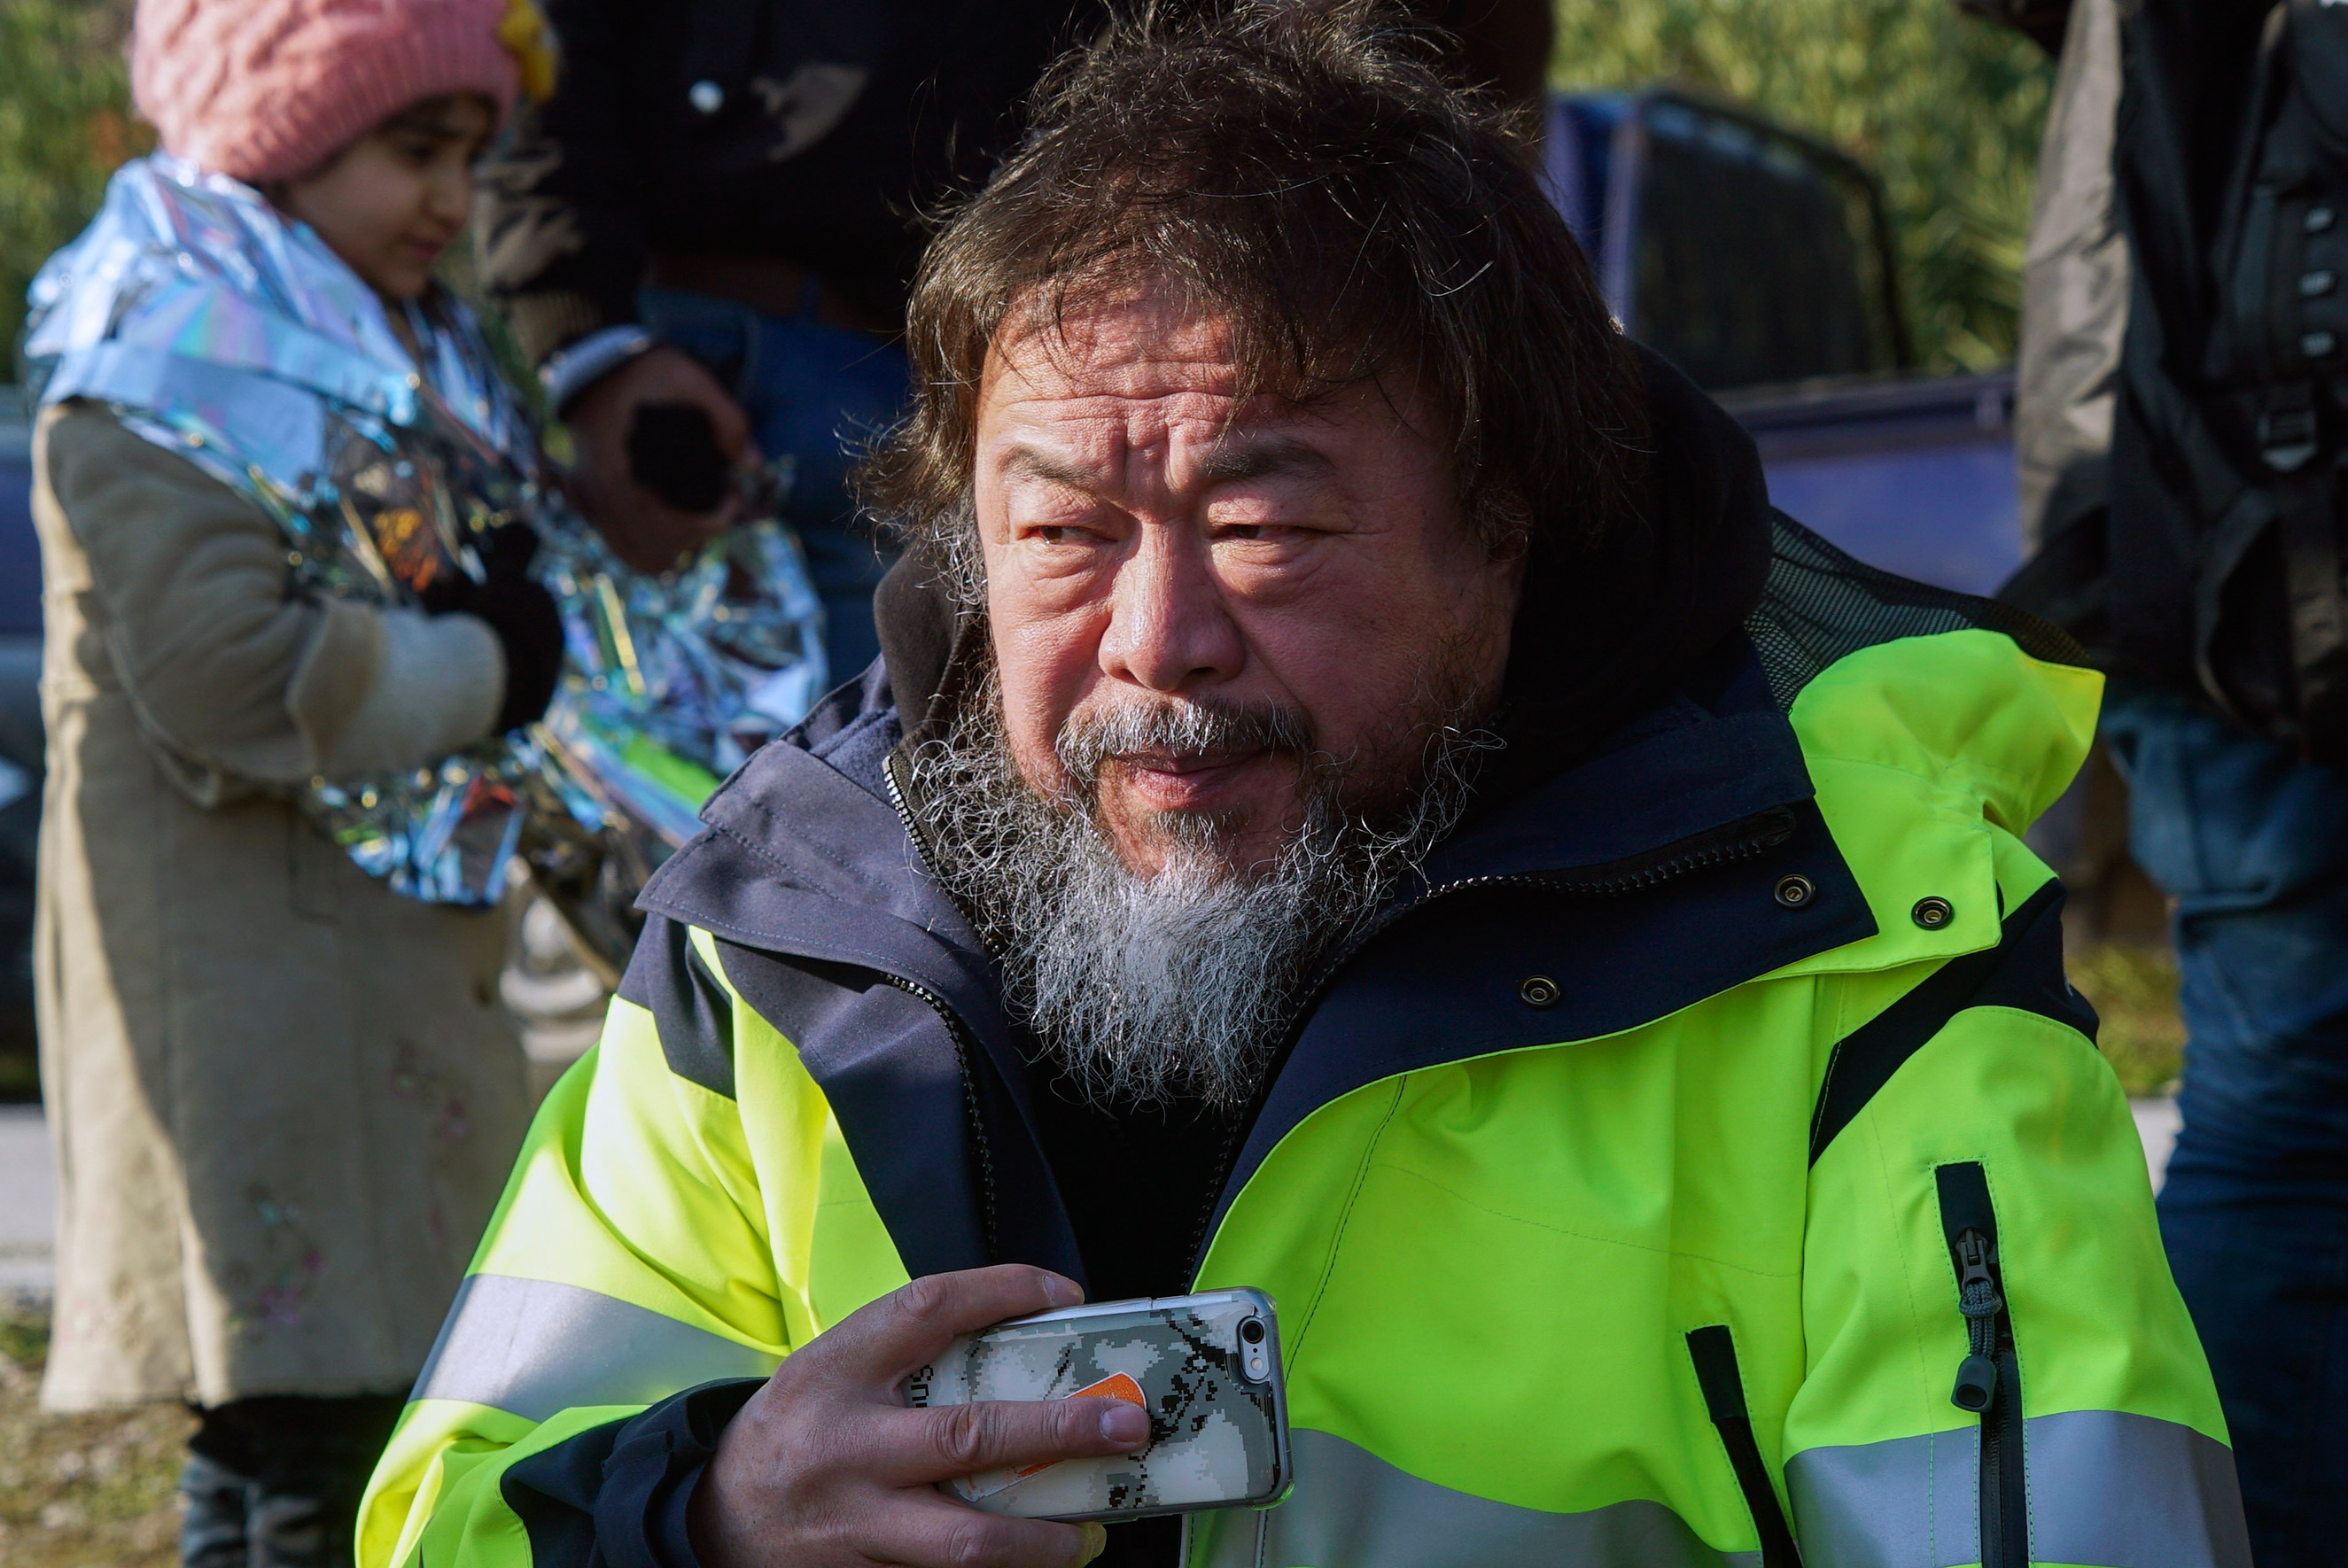 Chinese activist and artist Ai Weiwei assists refugees and migrants after their arrival from the Turkish coast to a beach on the Greek island of Lesbos, Jan. 28, 2016.